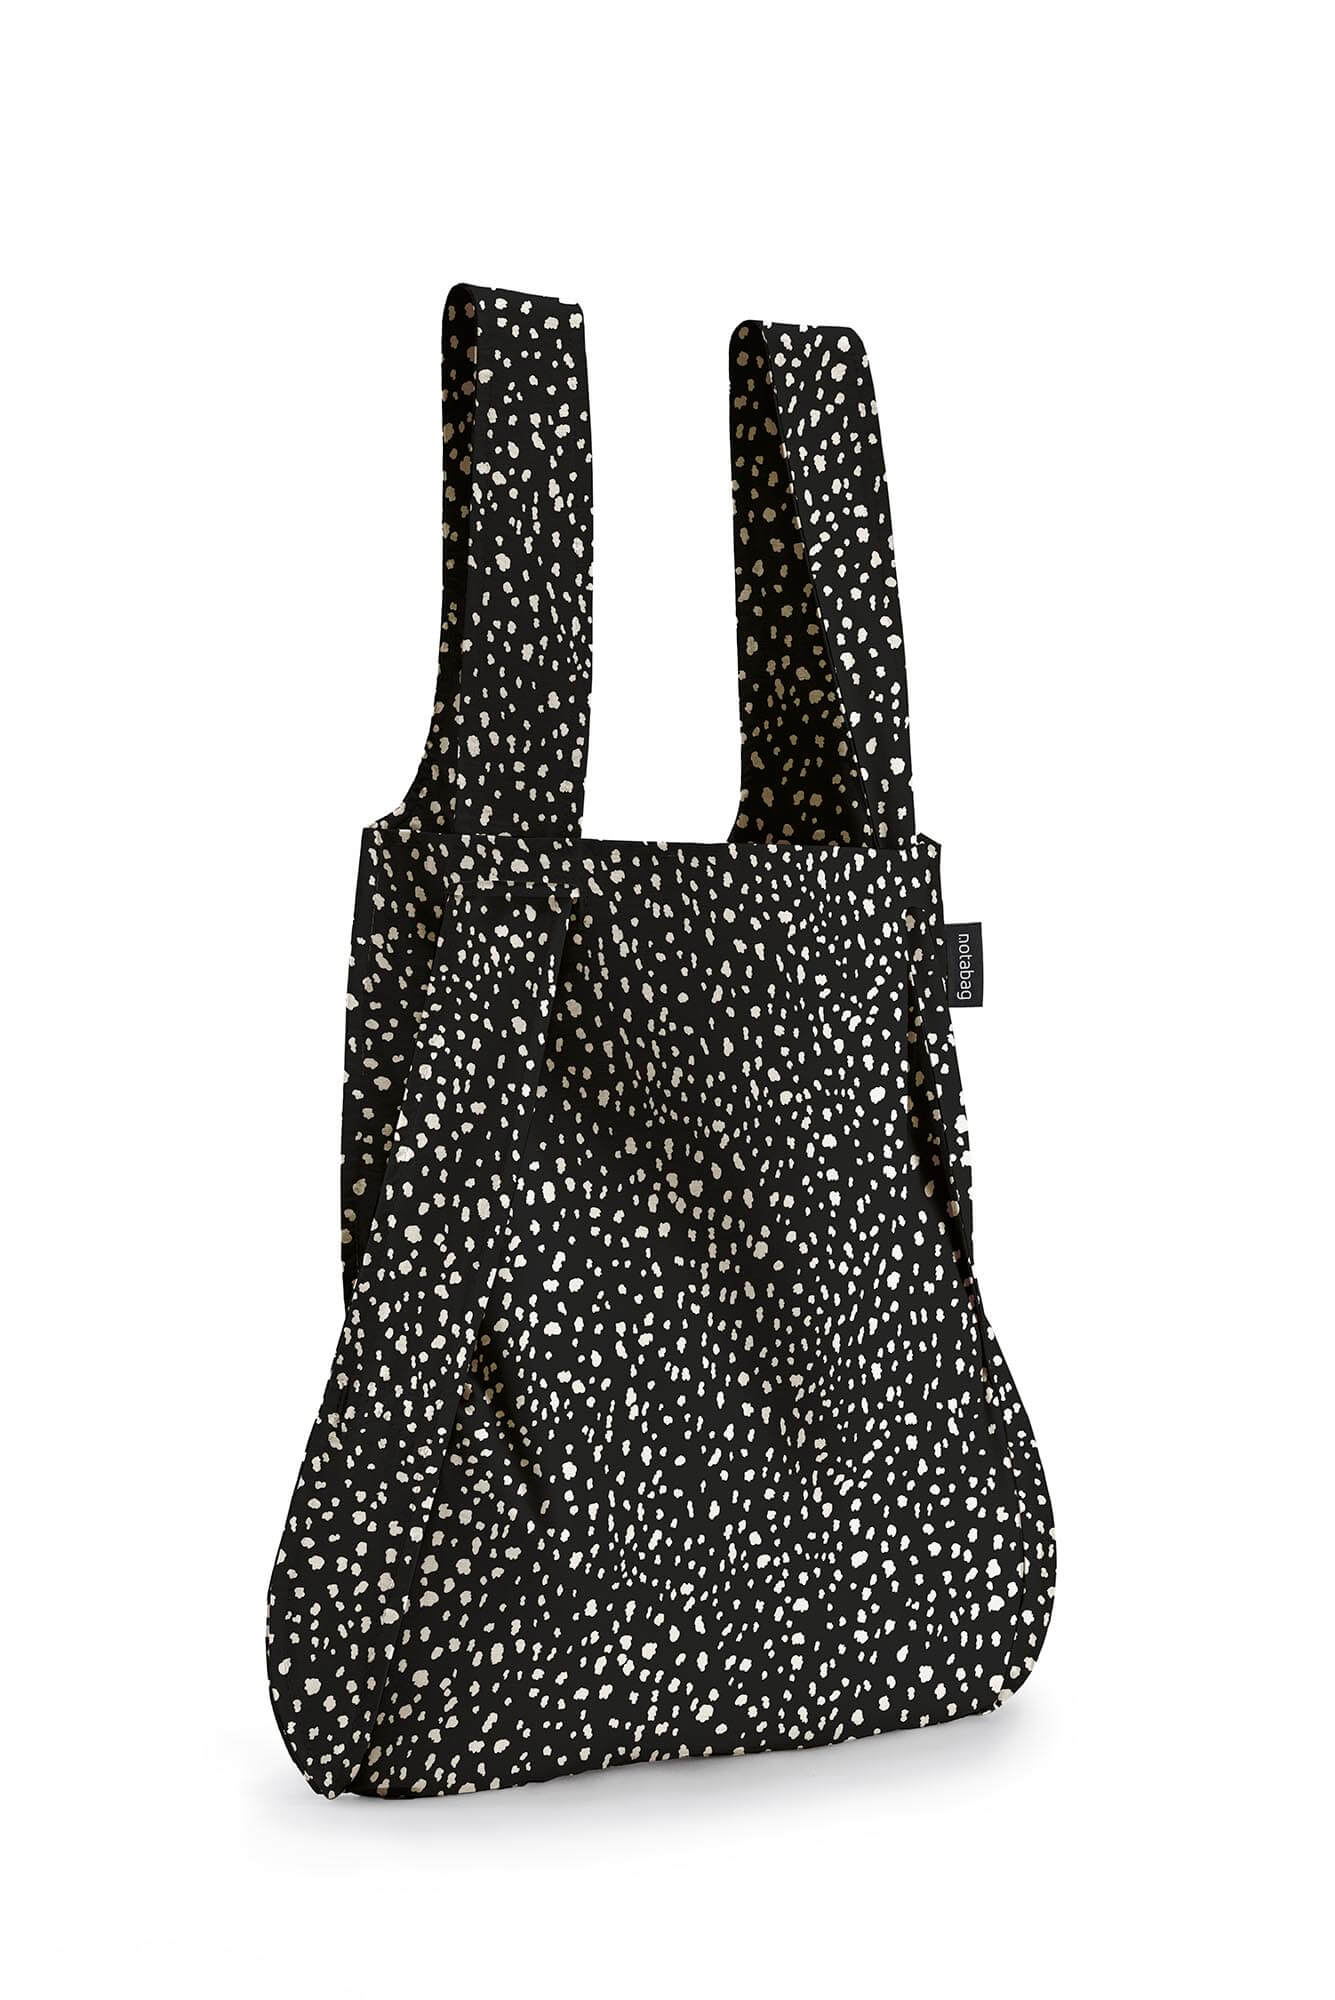 Notabag Rugzak / Shopper Black Sprinkle